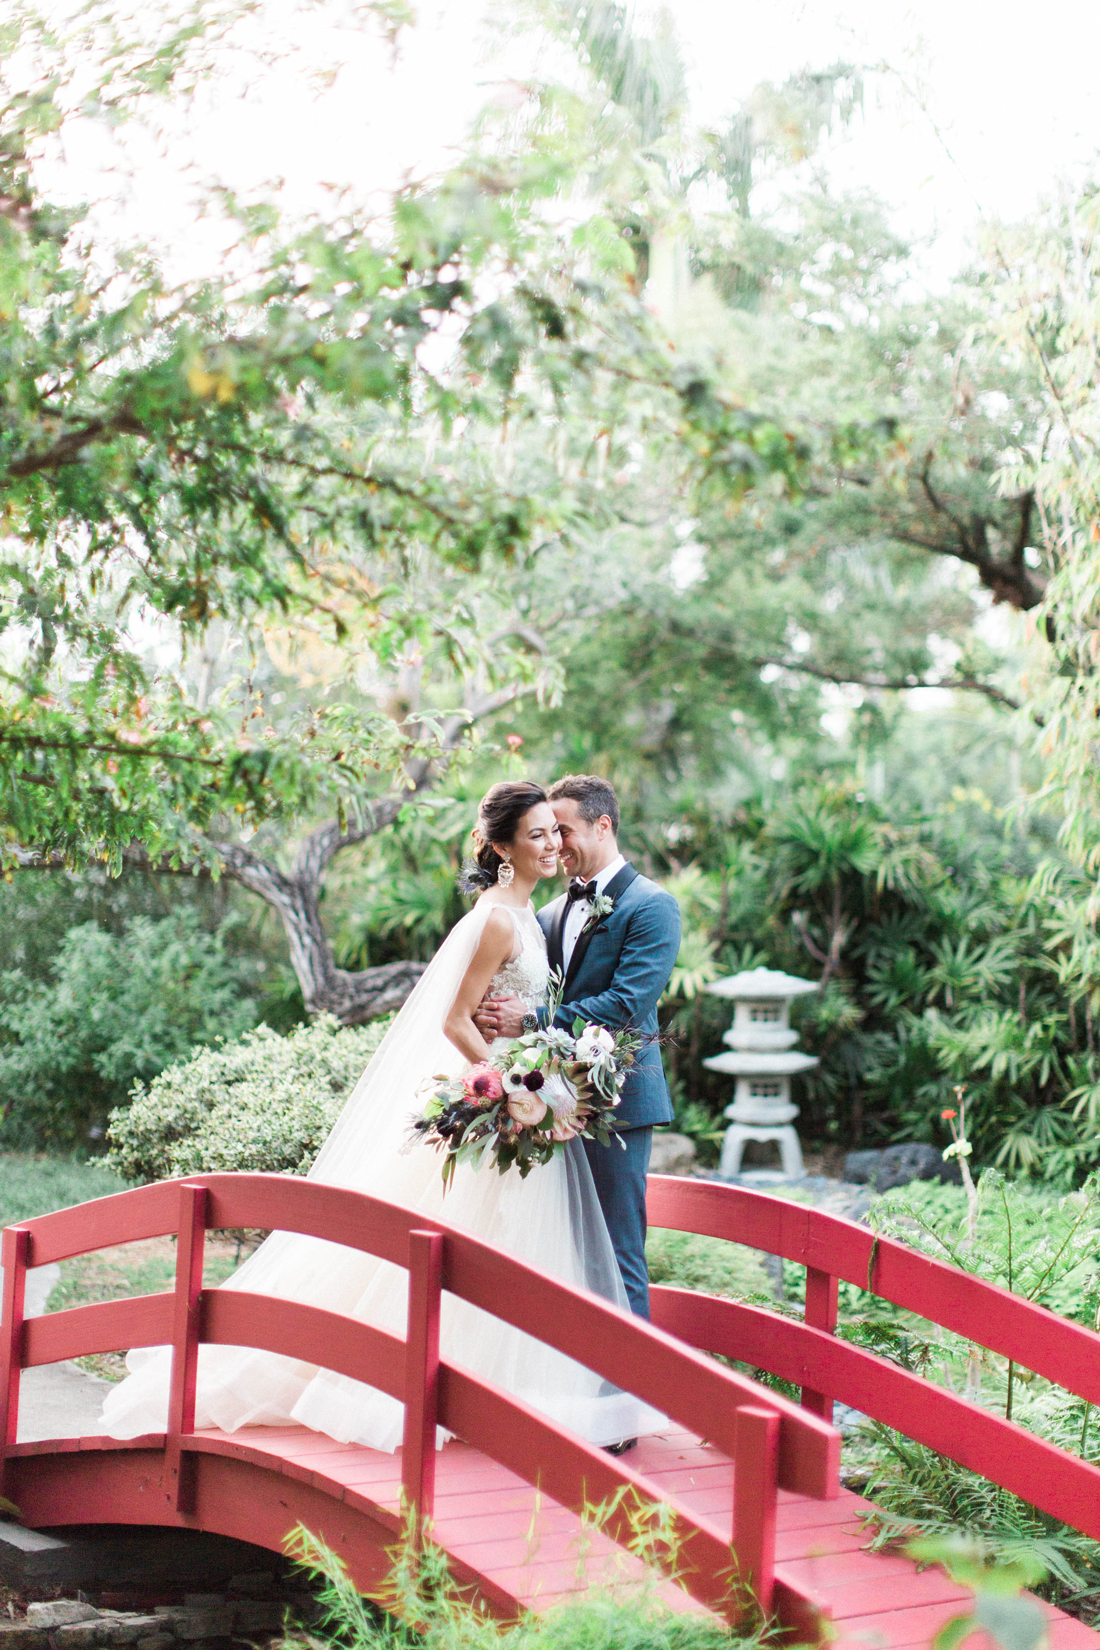 bride and groom pose on red wooden bridge in garden